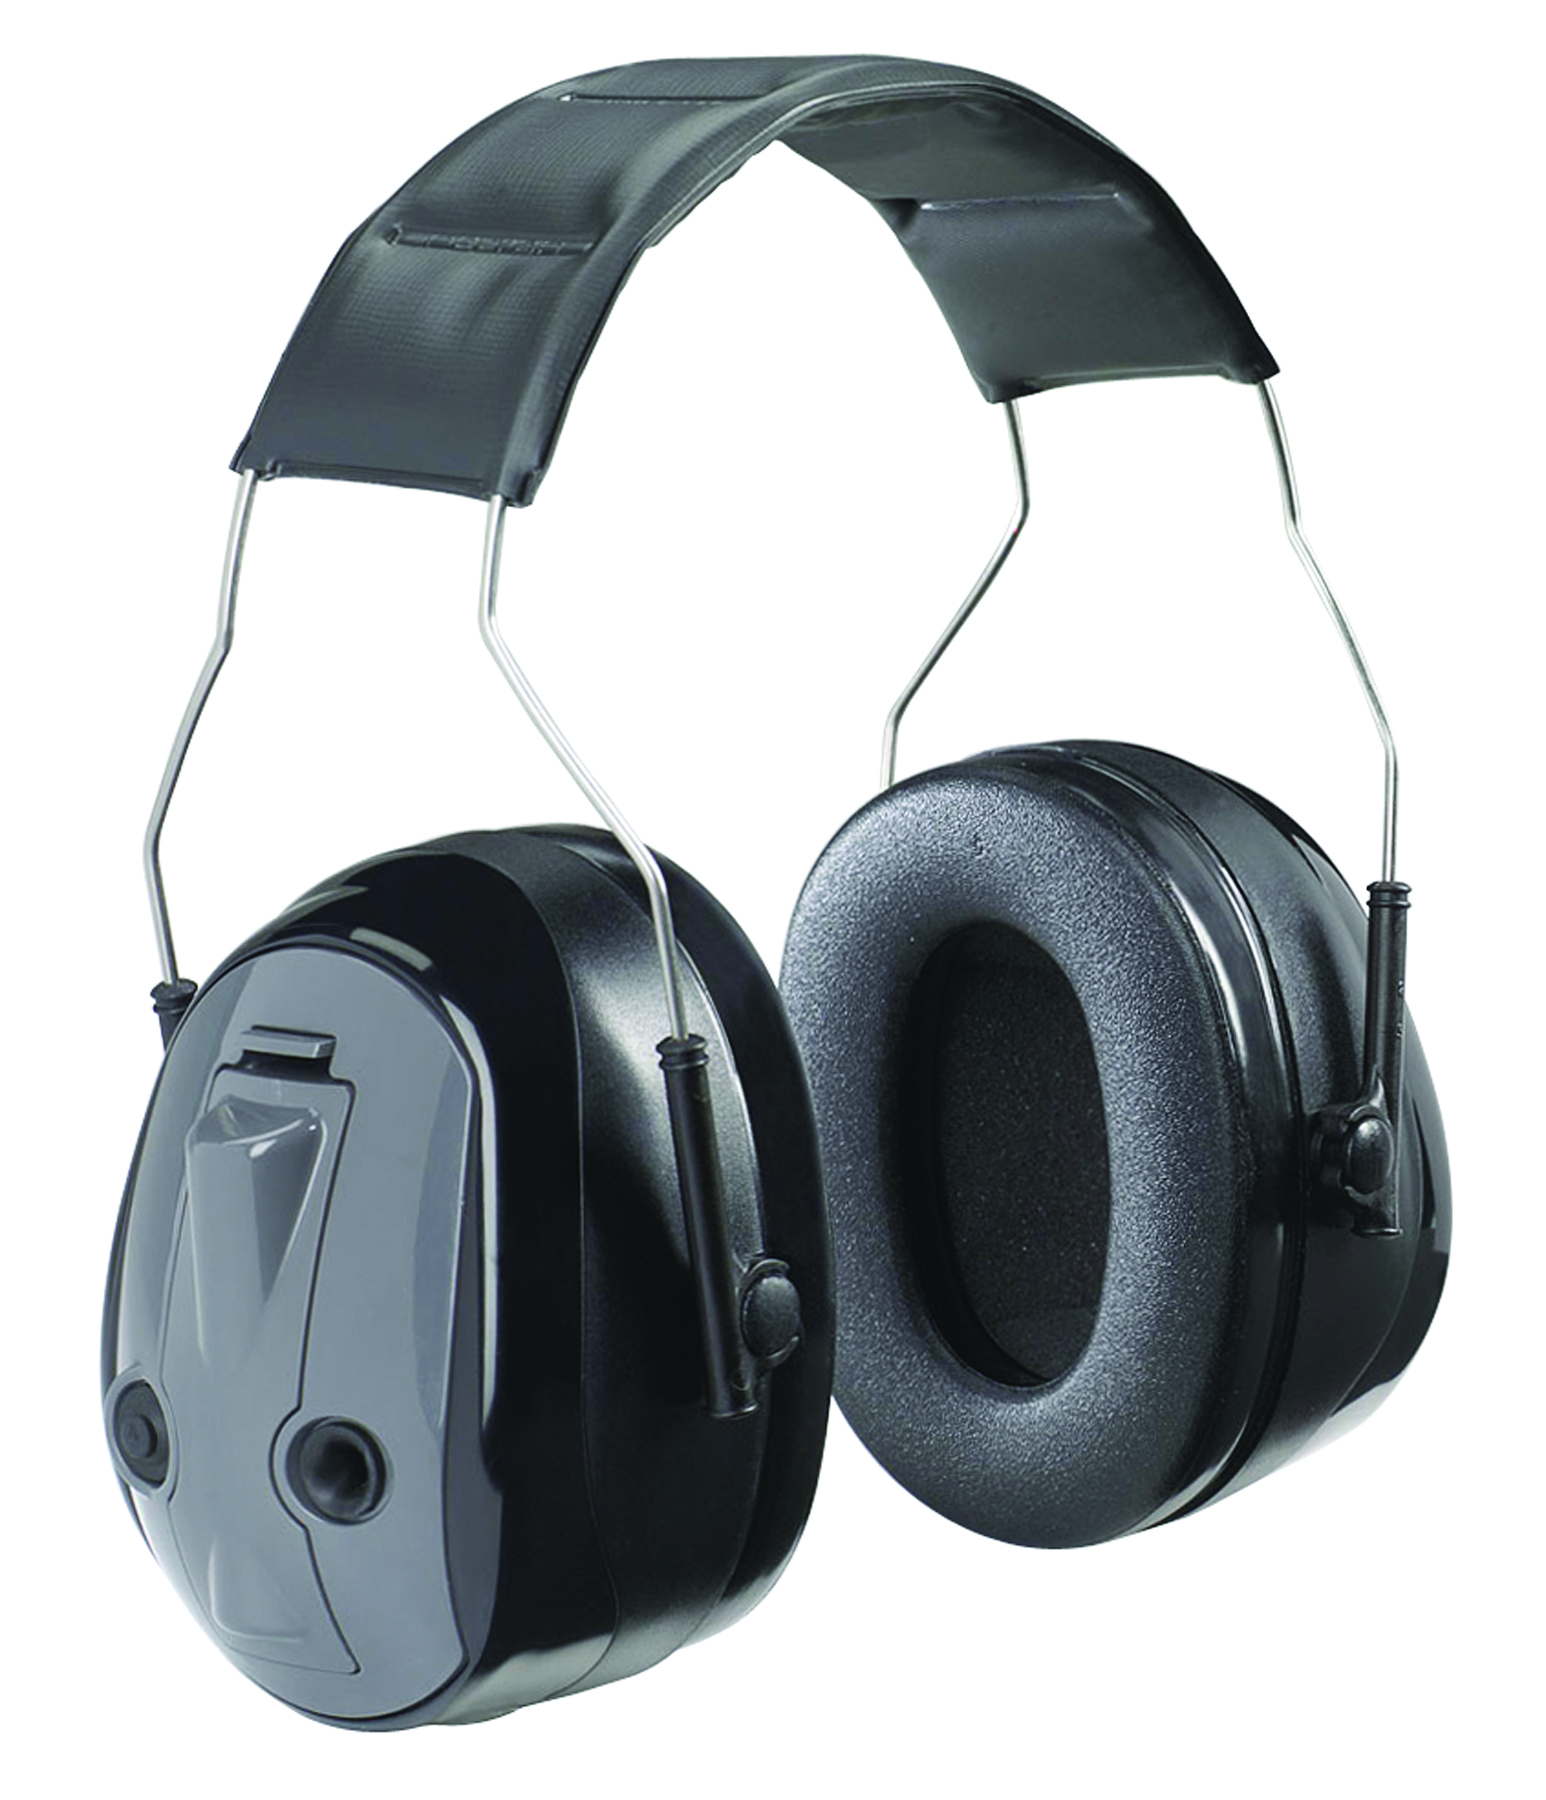 H7A-PTL - 3M™ Peltor™ PTL™ Earmuffs-(NRR)* 26 dB, Over-the-HEAd-----UOM: 1/EA